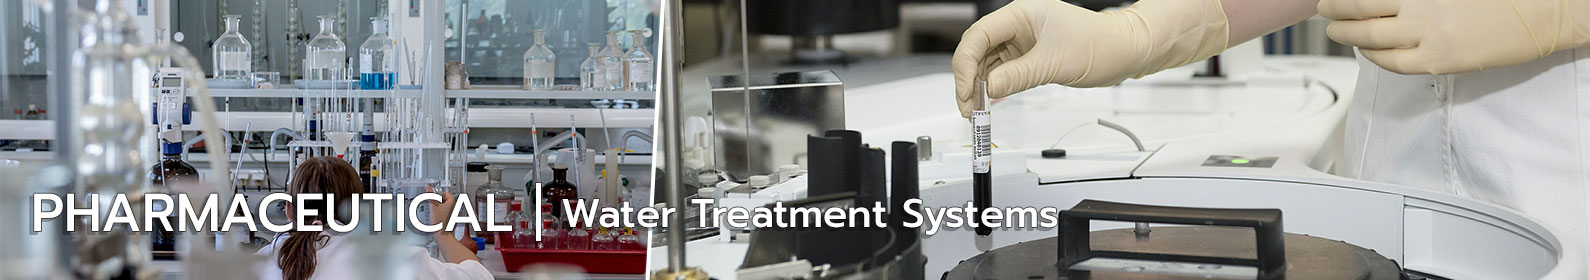 Pharmaceutical Water Treatment Systems